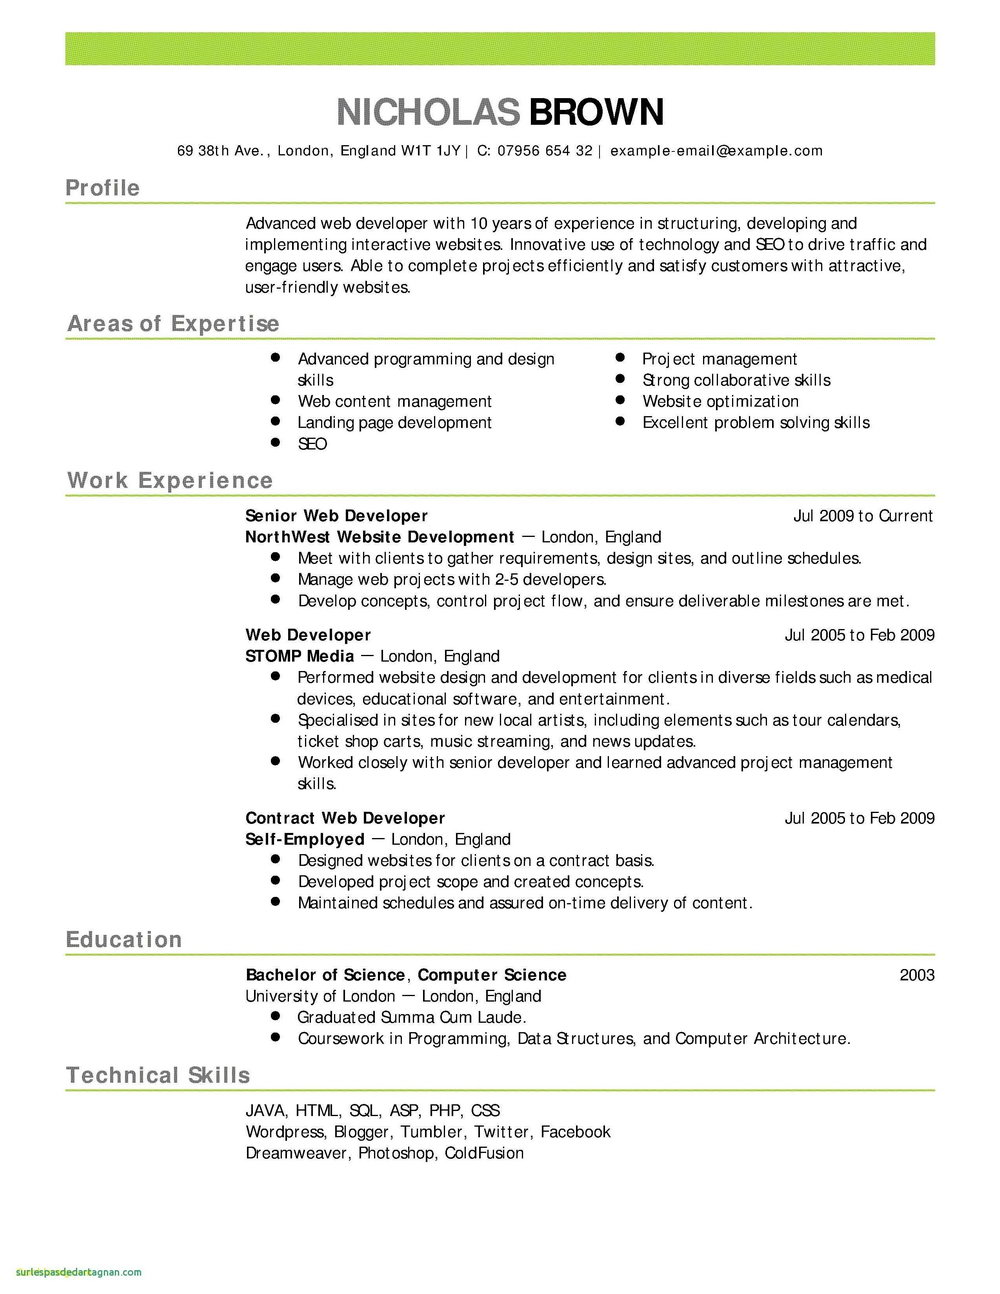 Free Resume Search For Employers In Uae